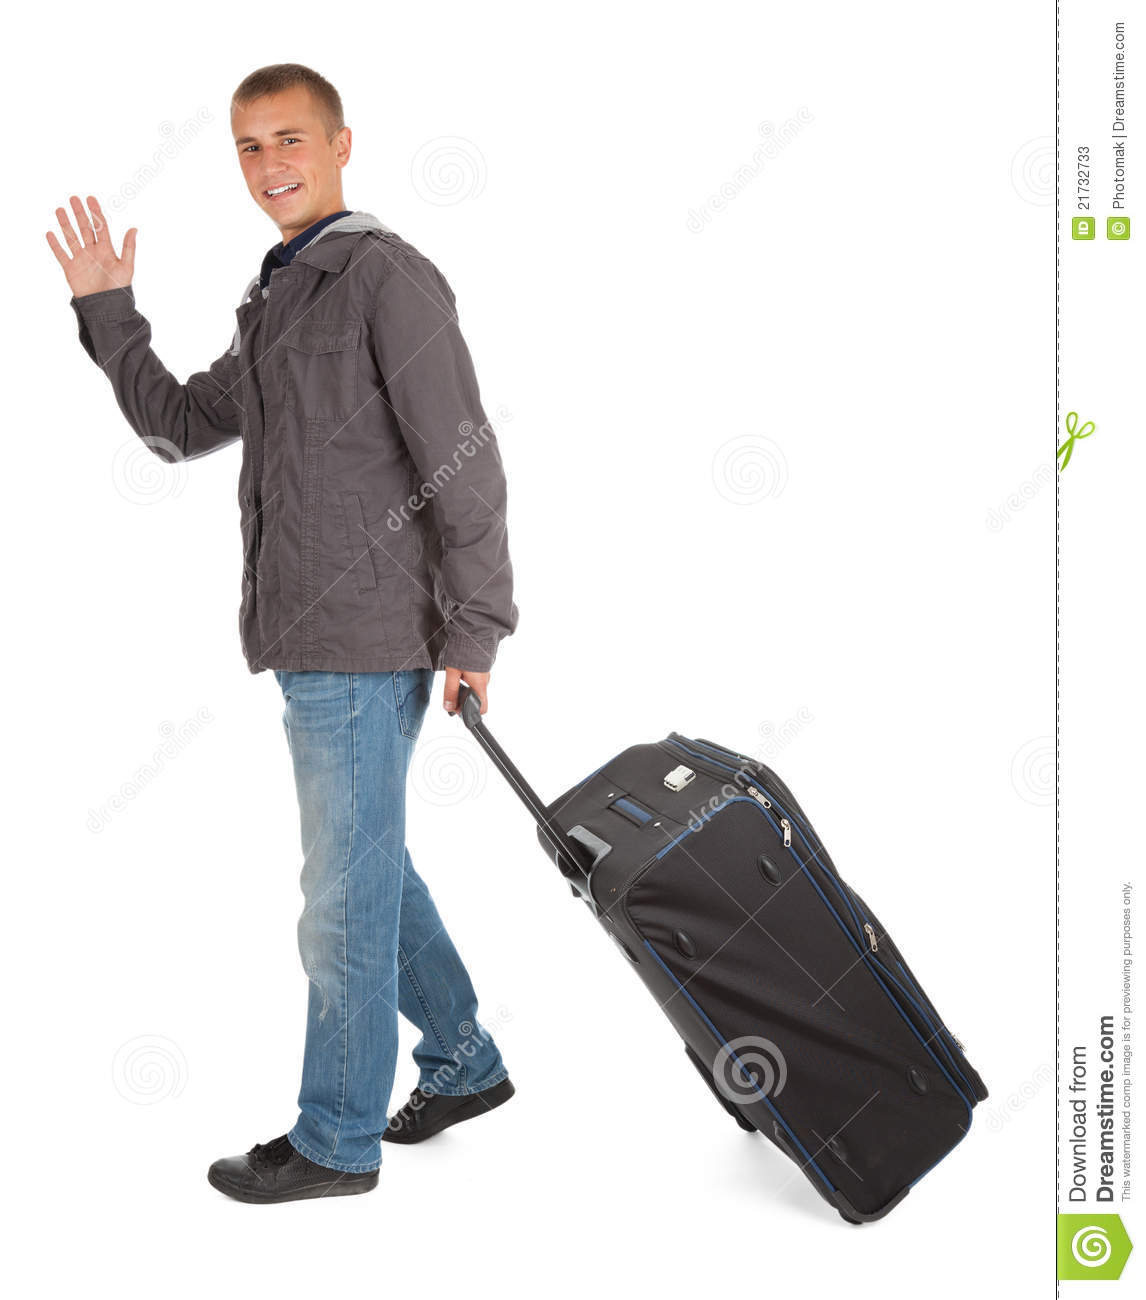 United Baggage Prices Young Man With Suitcase Waving Hello Full Length Stock